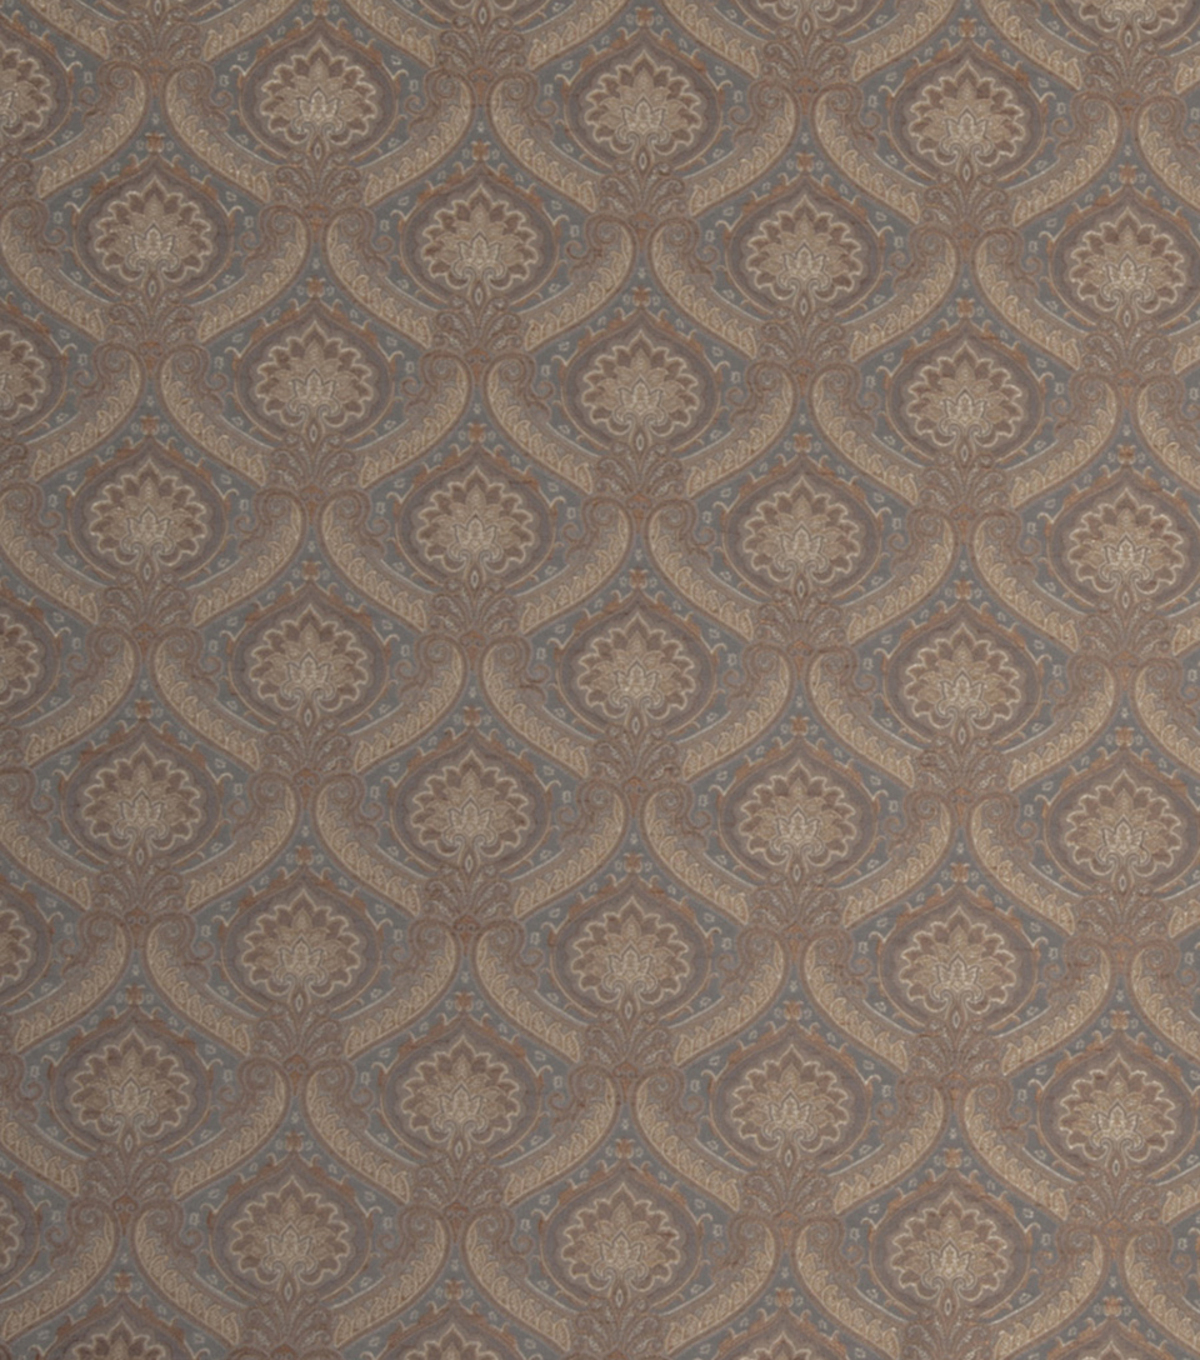 Home Decor 8\u0022x8\u0022 Fabric Swatch-Print Fabric Eaton Square Macoy Wedgewood